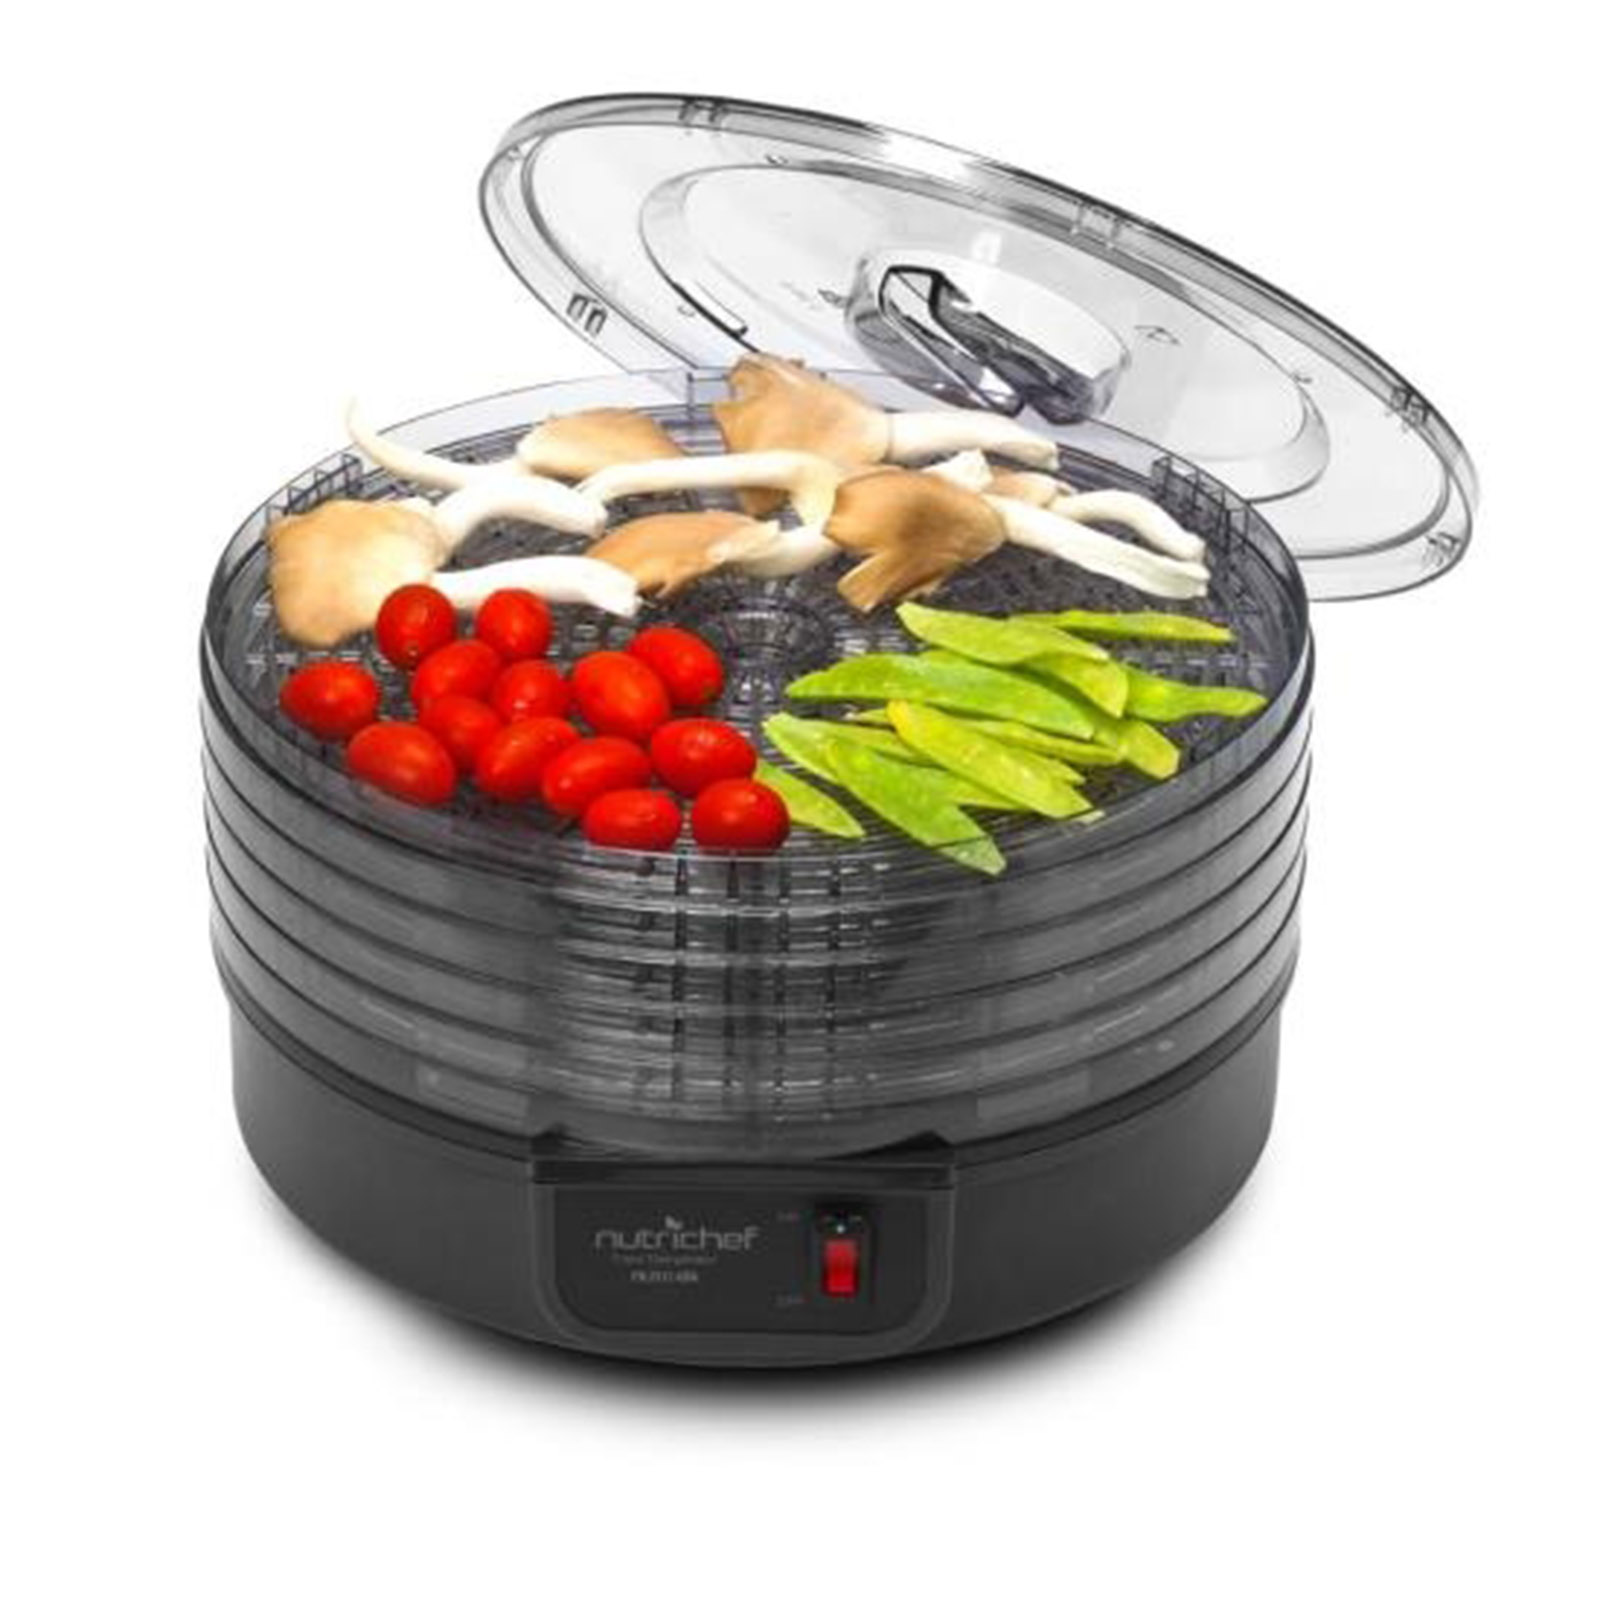 NutriChef Electric Countertop Food Dehydrator, Food Preserver Black by Nutrichef